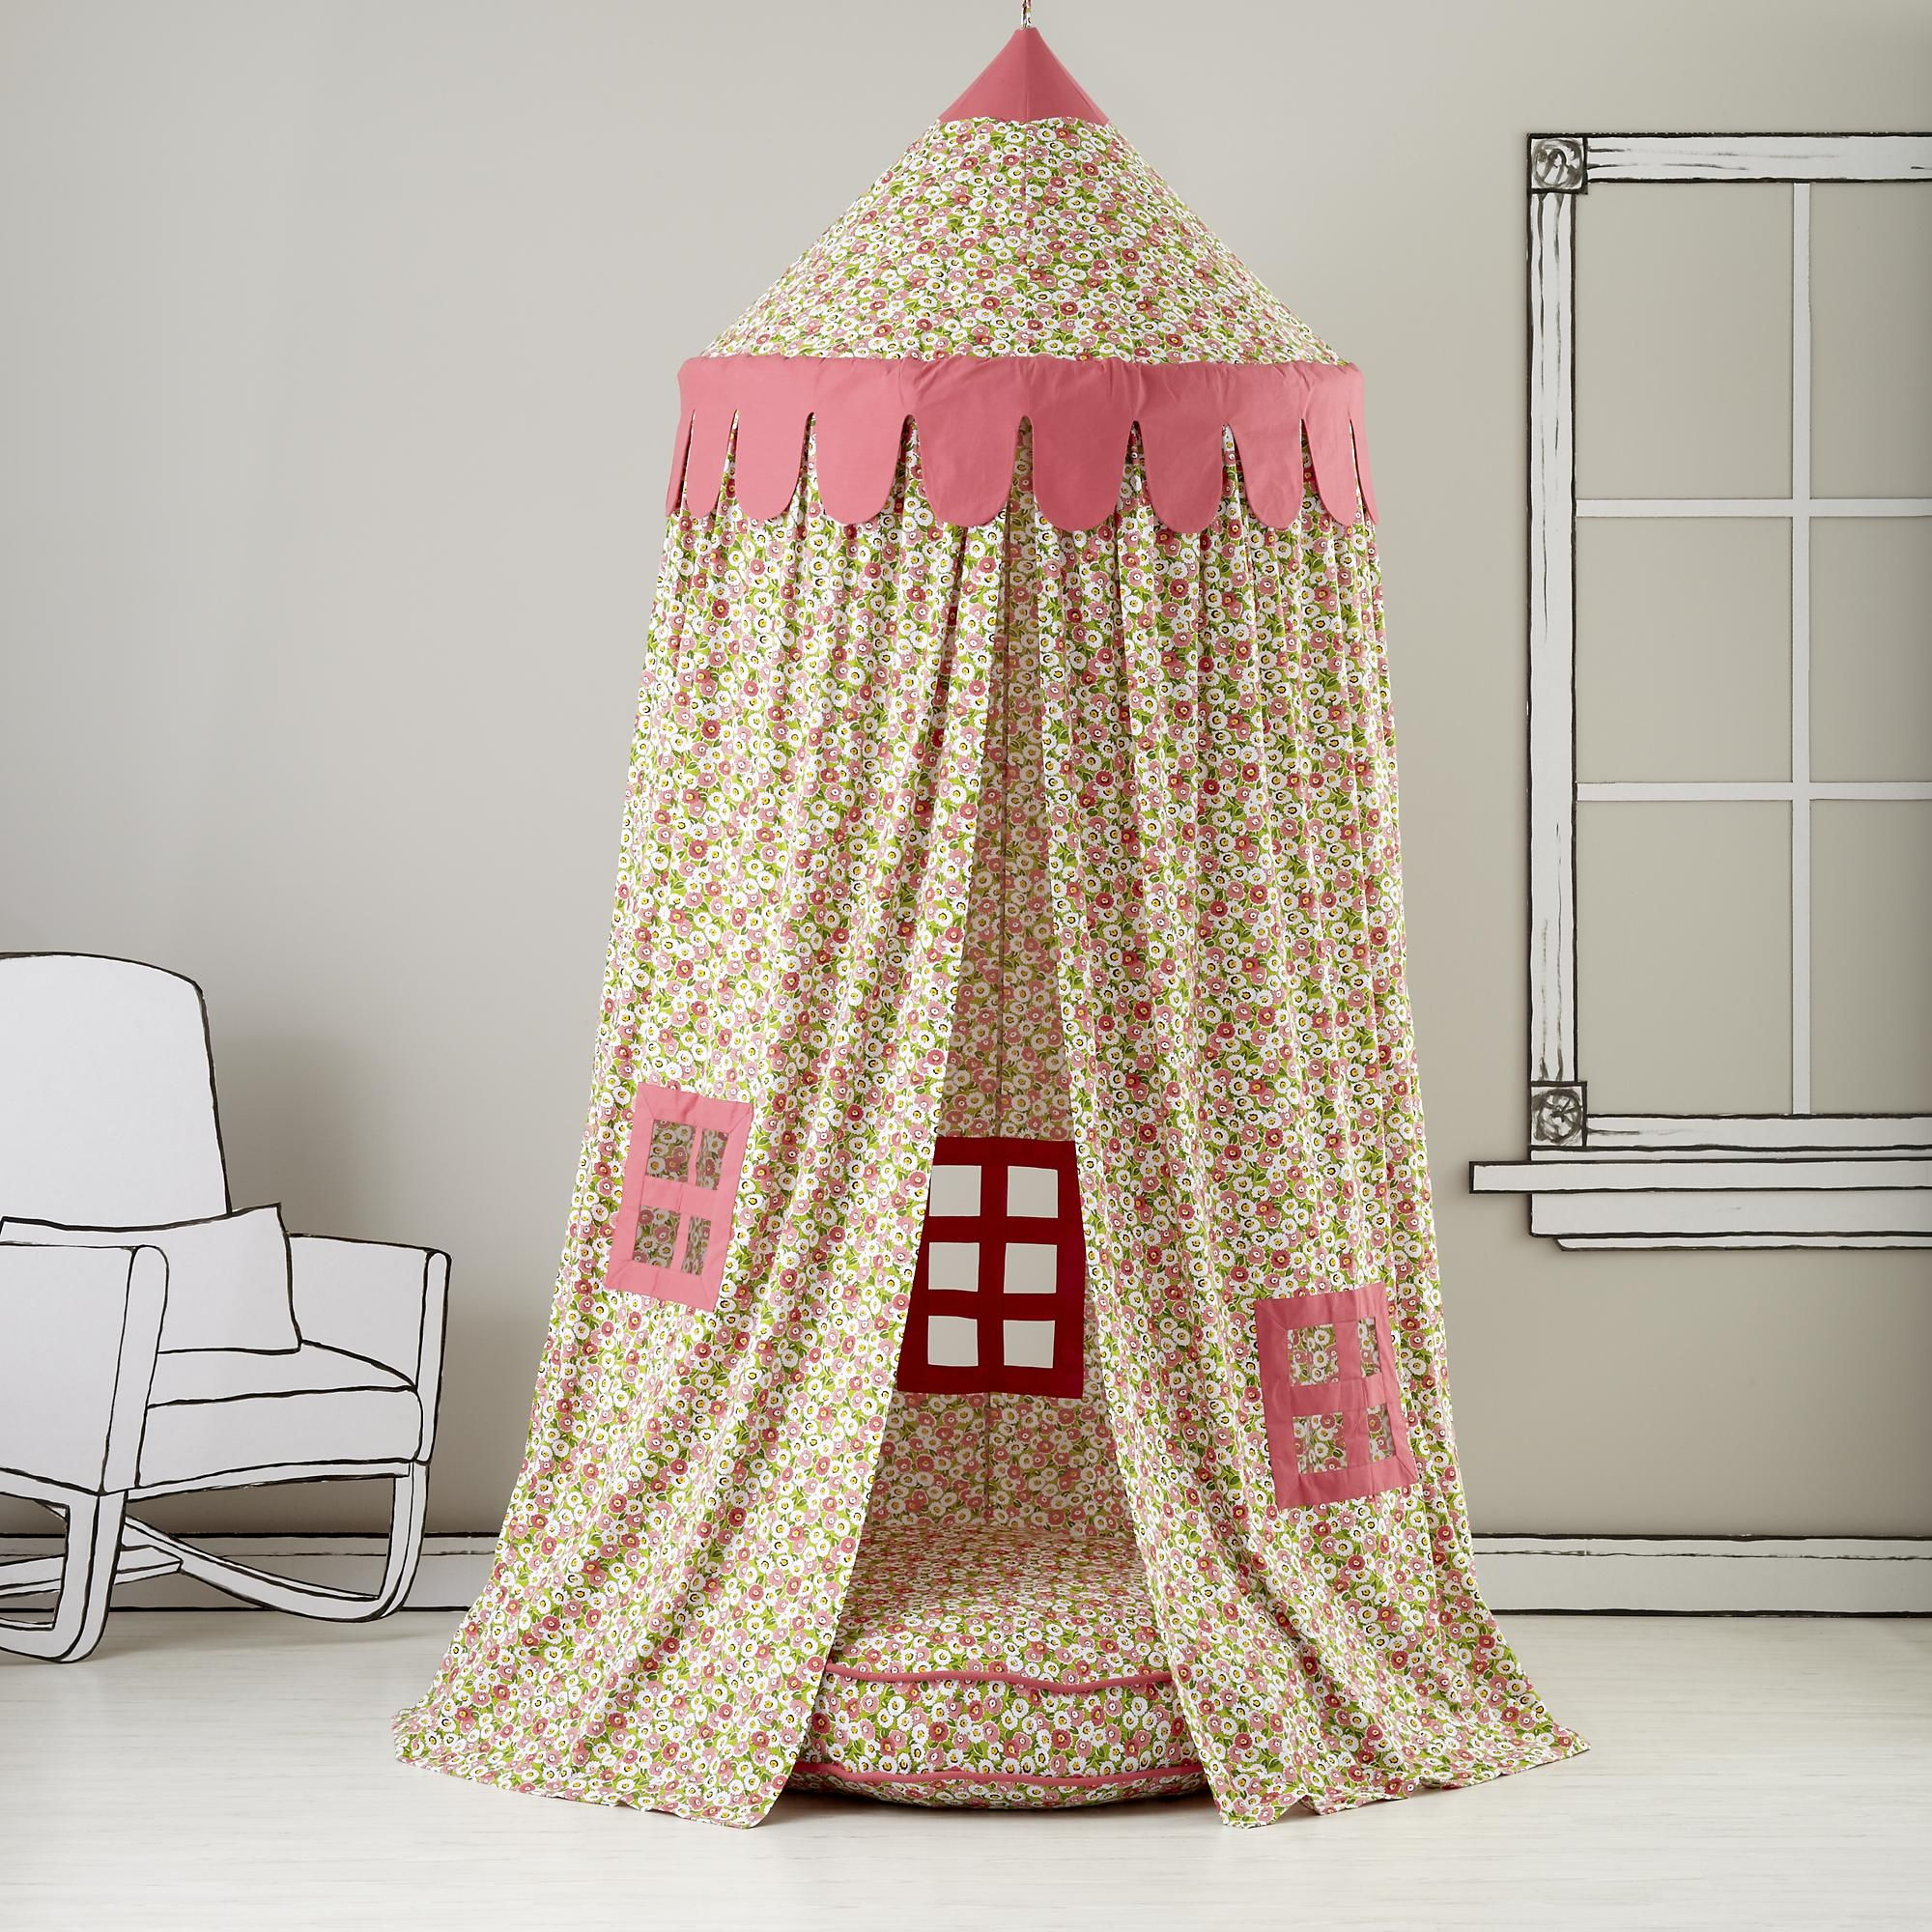 Kids Canopy Floral Play Circus Tent in Playhomes u0026 Tents & Kids Canopy: Floral Play Circus Tent in Playhomes u0026 Tents ...